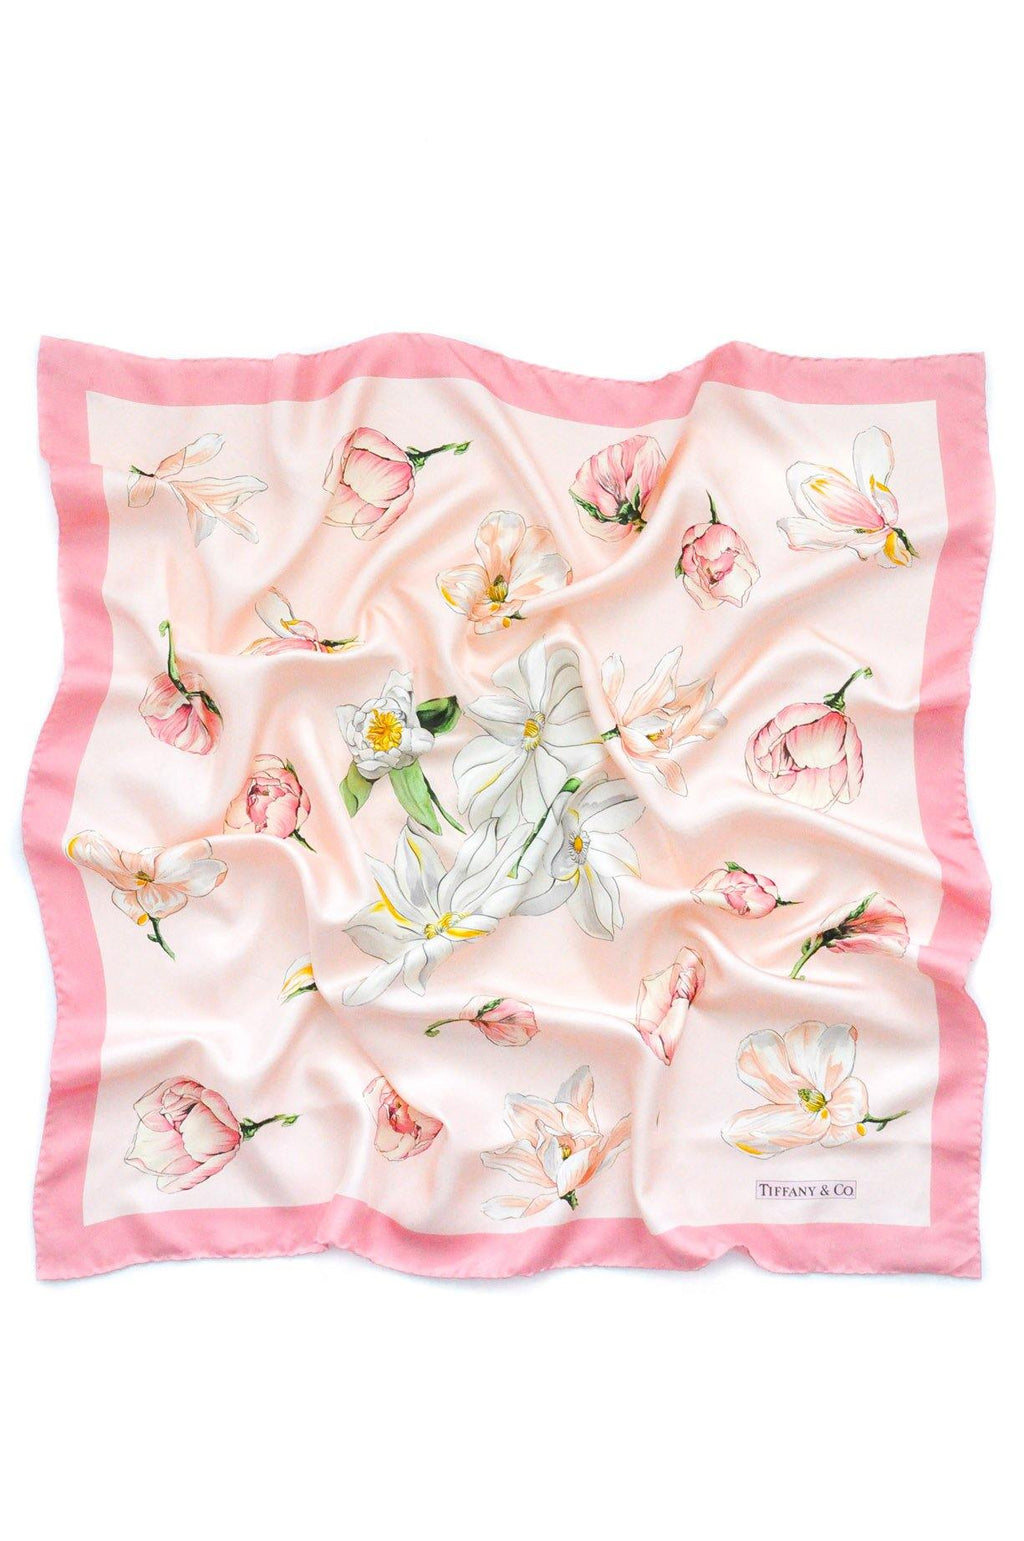 Tiffany & Co. Pink Floral Square Scarf